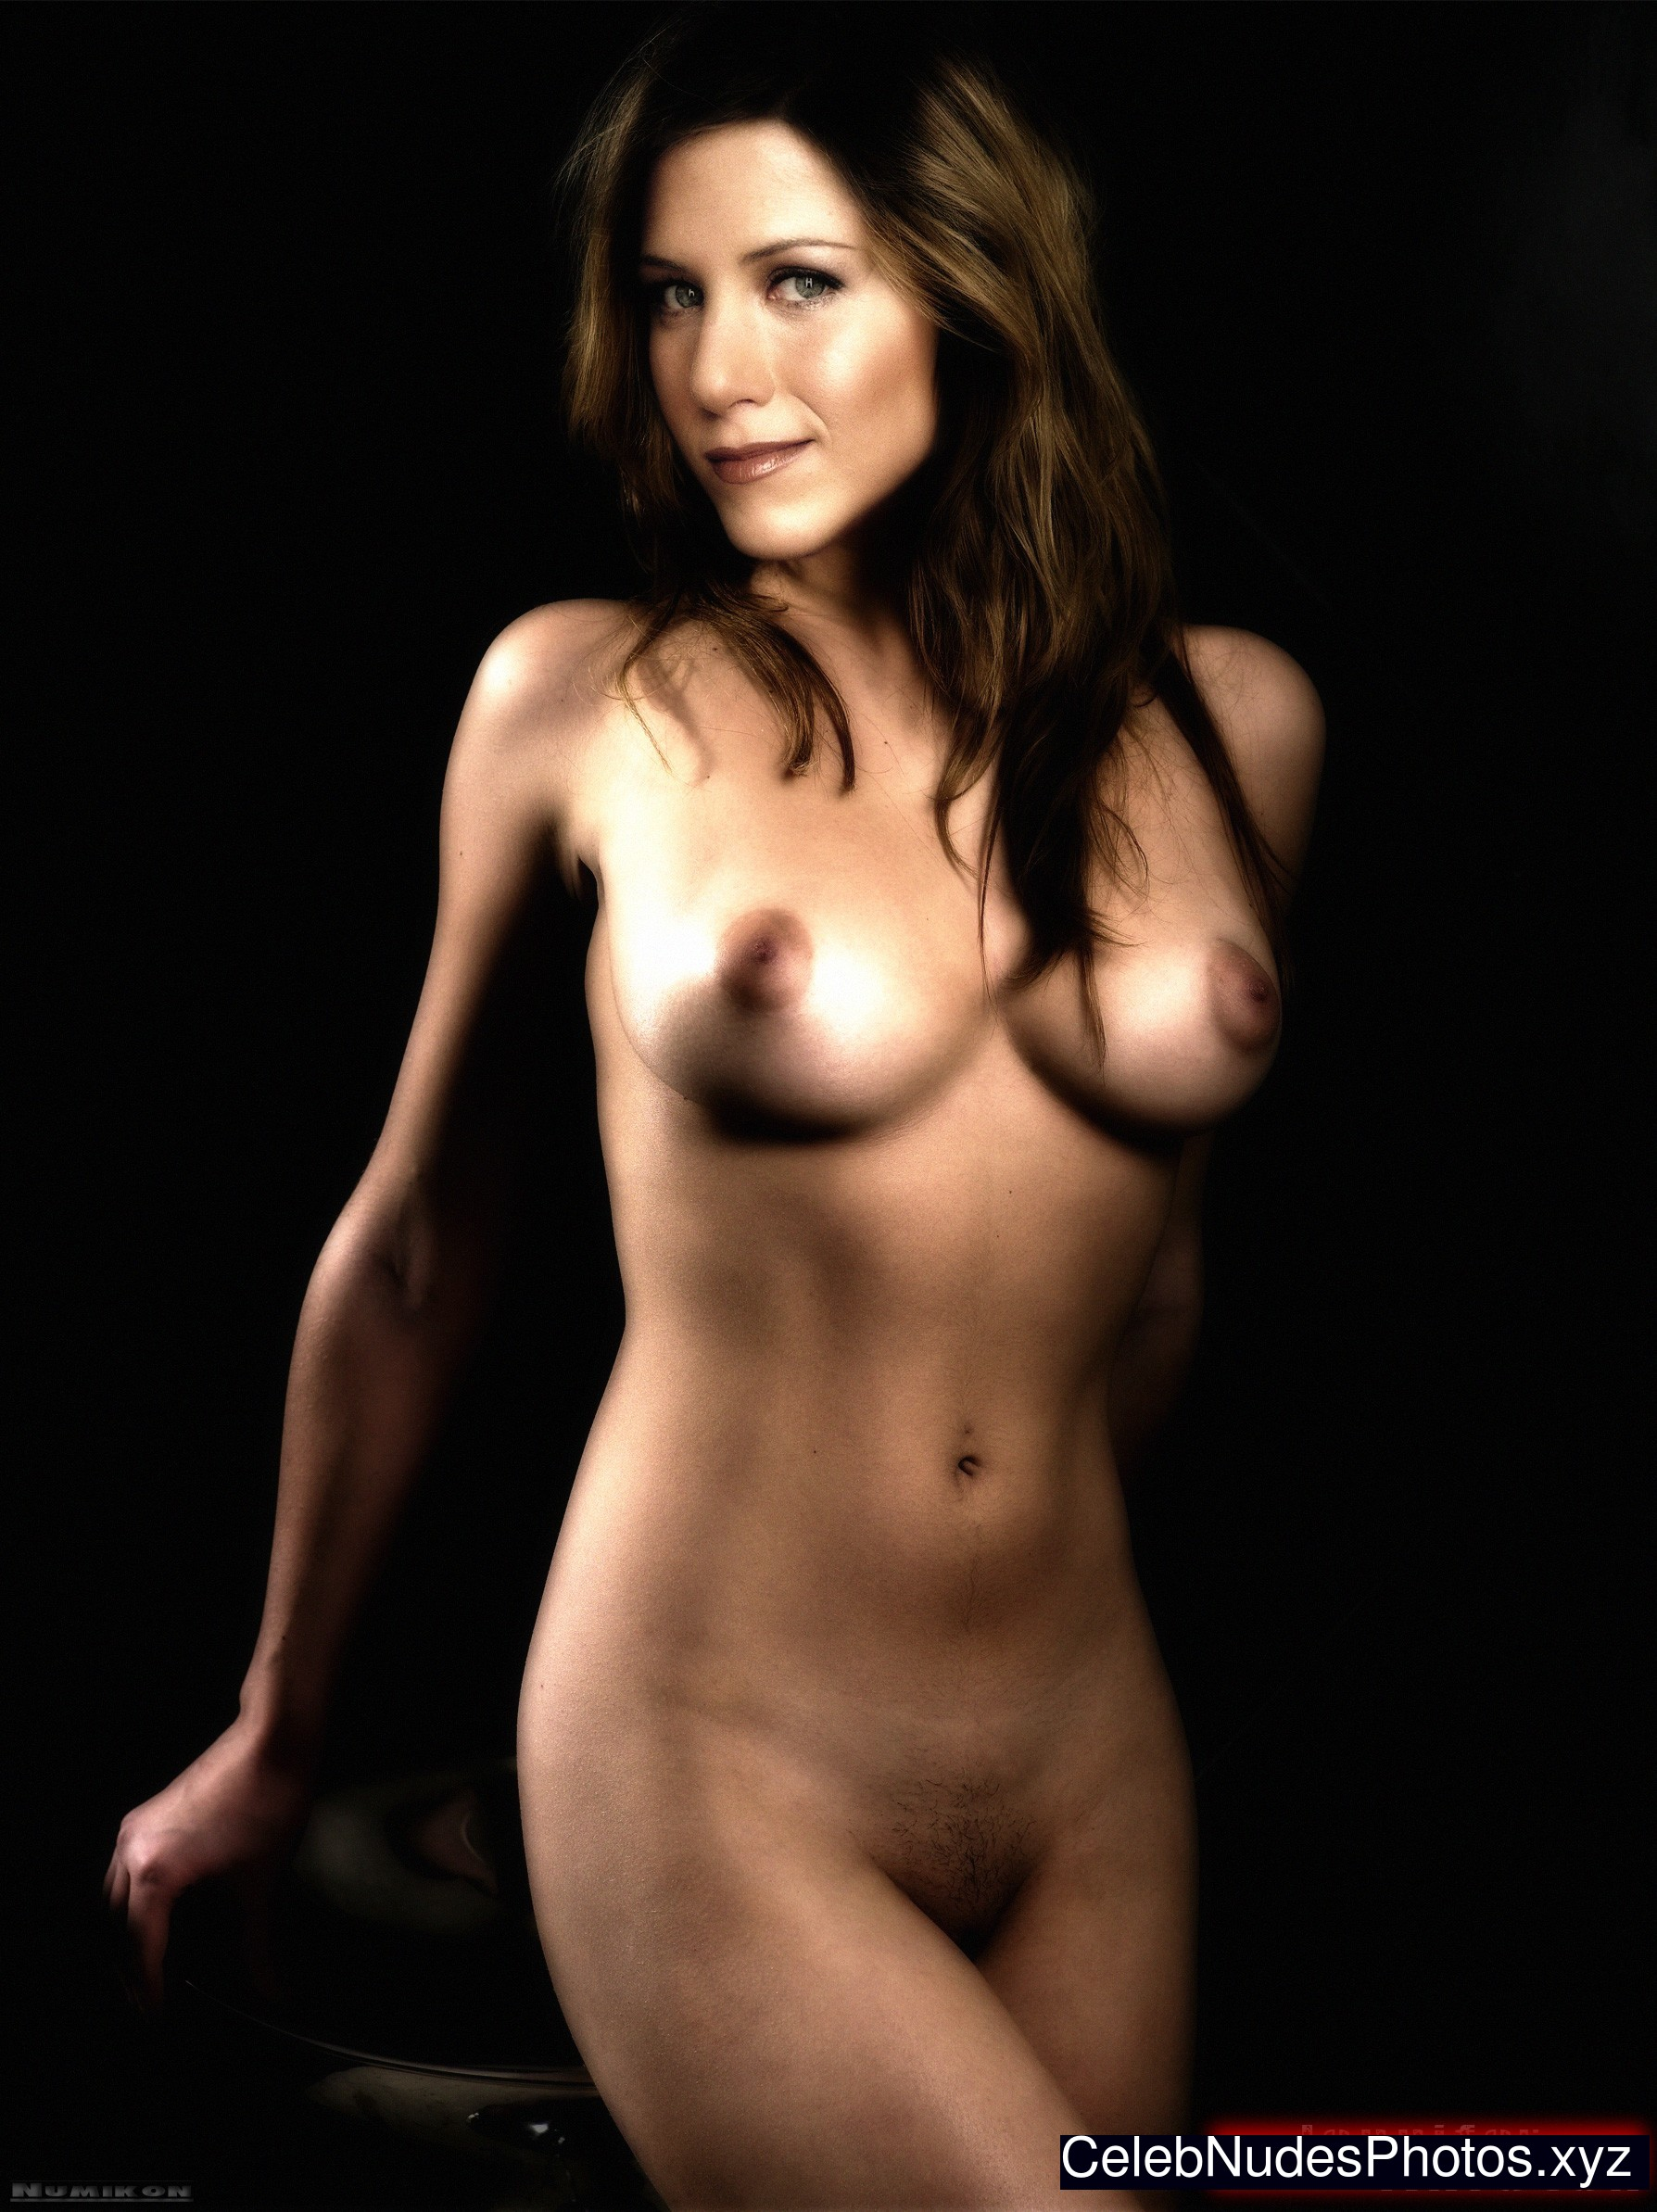 Aniston jennifer new nude picture